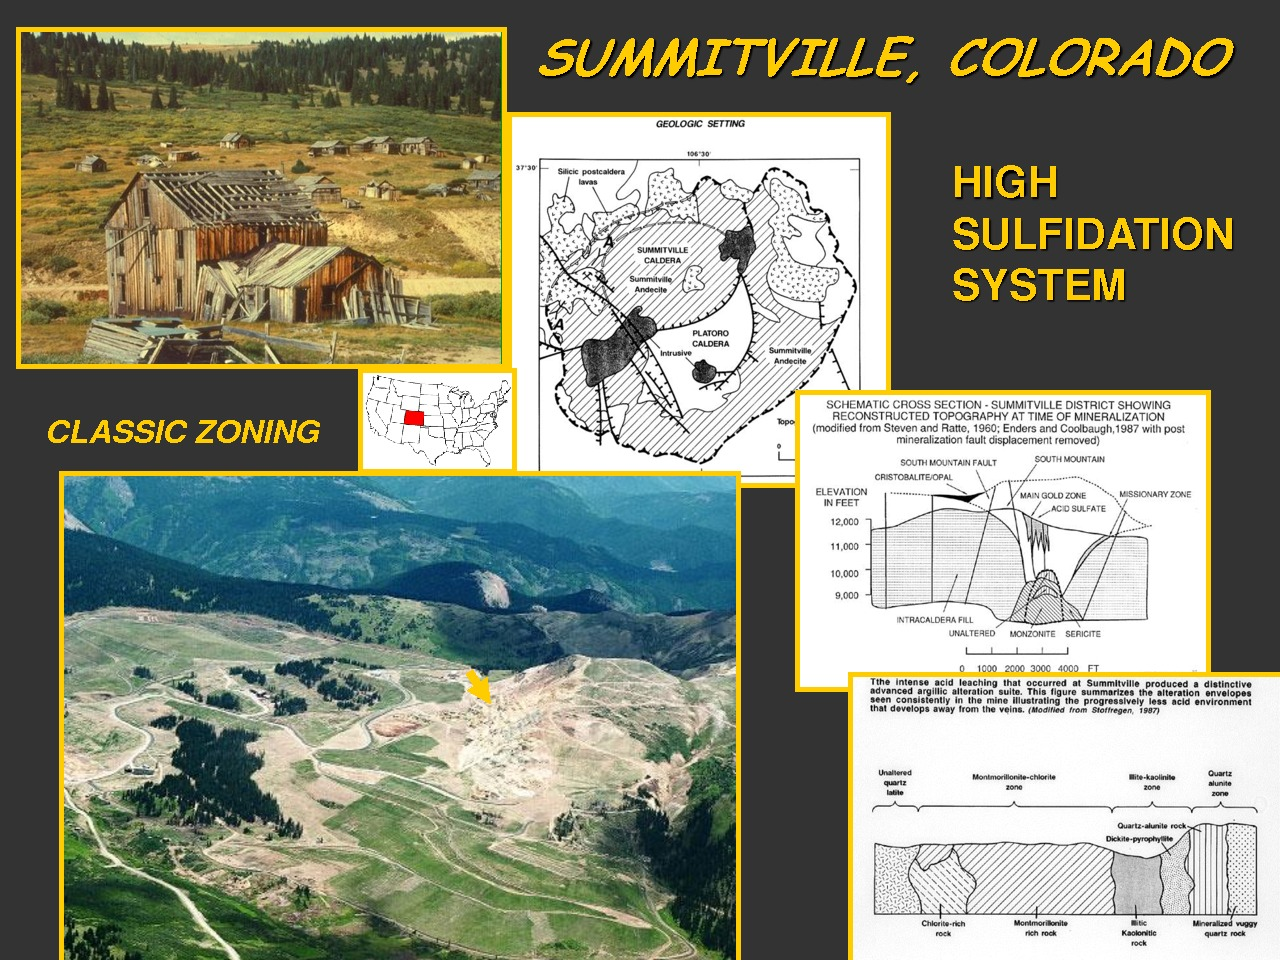 thumbnail of HSS_Summitville